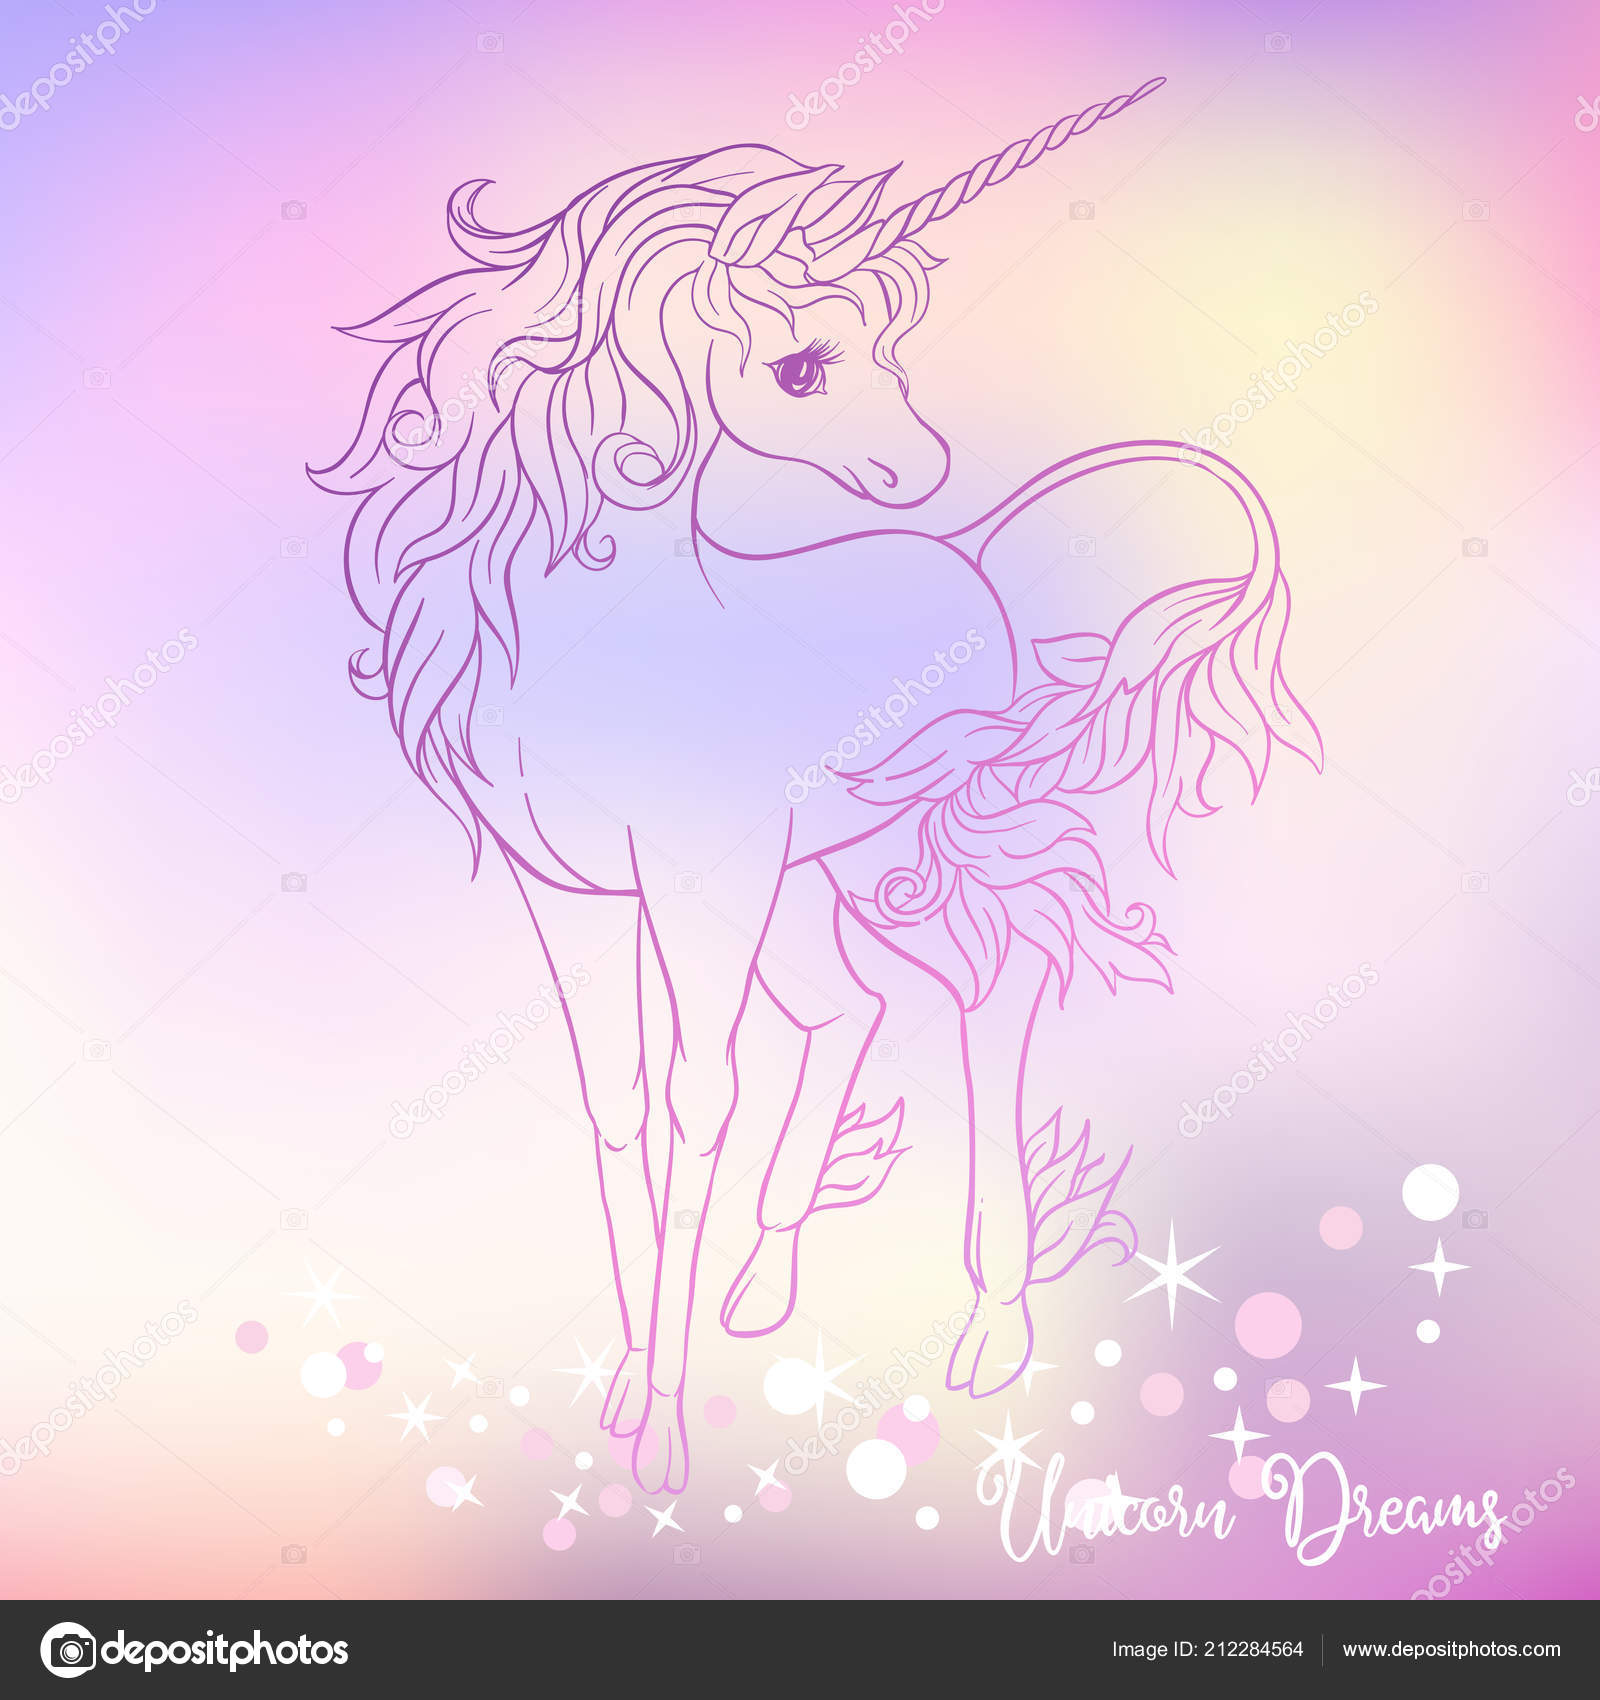 White unicorn with multycolor mane and shine stars on light ultra violet pastel colors on mesh pink blue background vector illustration outline drawing